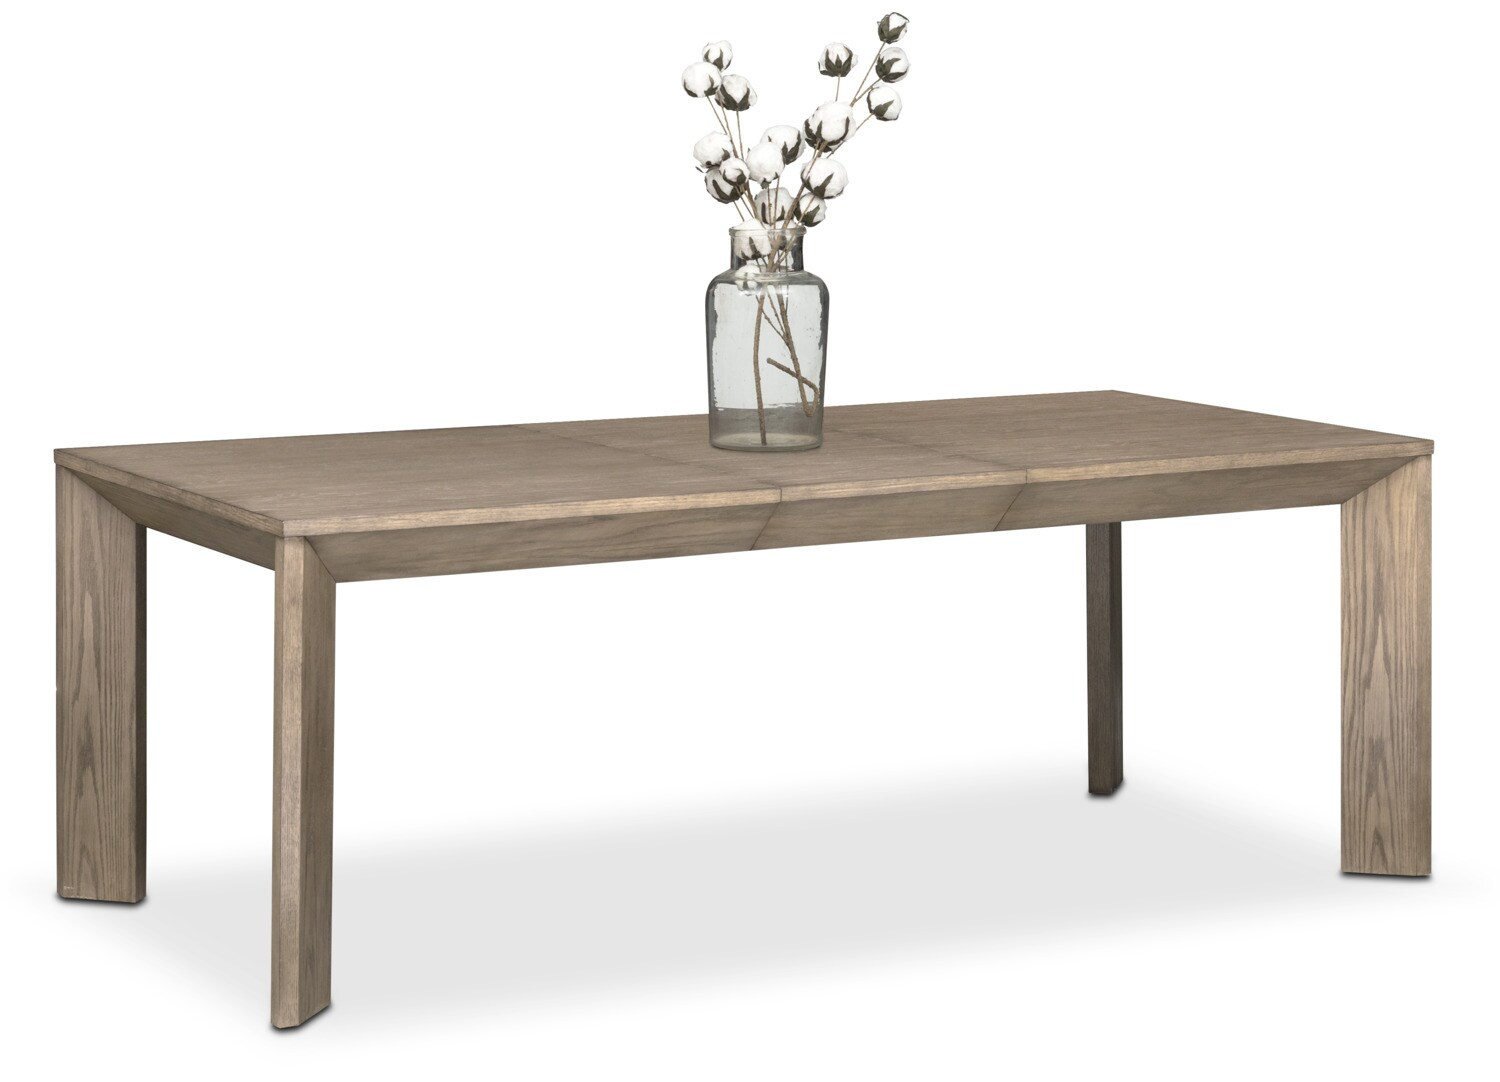 $289.99 Gavin Table   Graystone